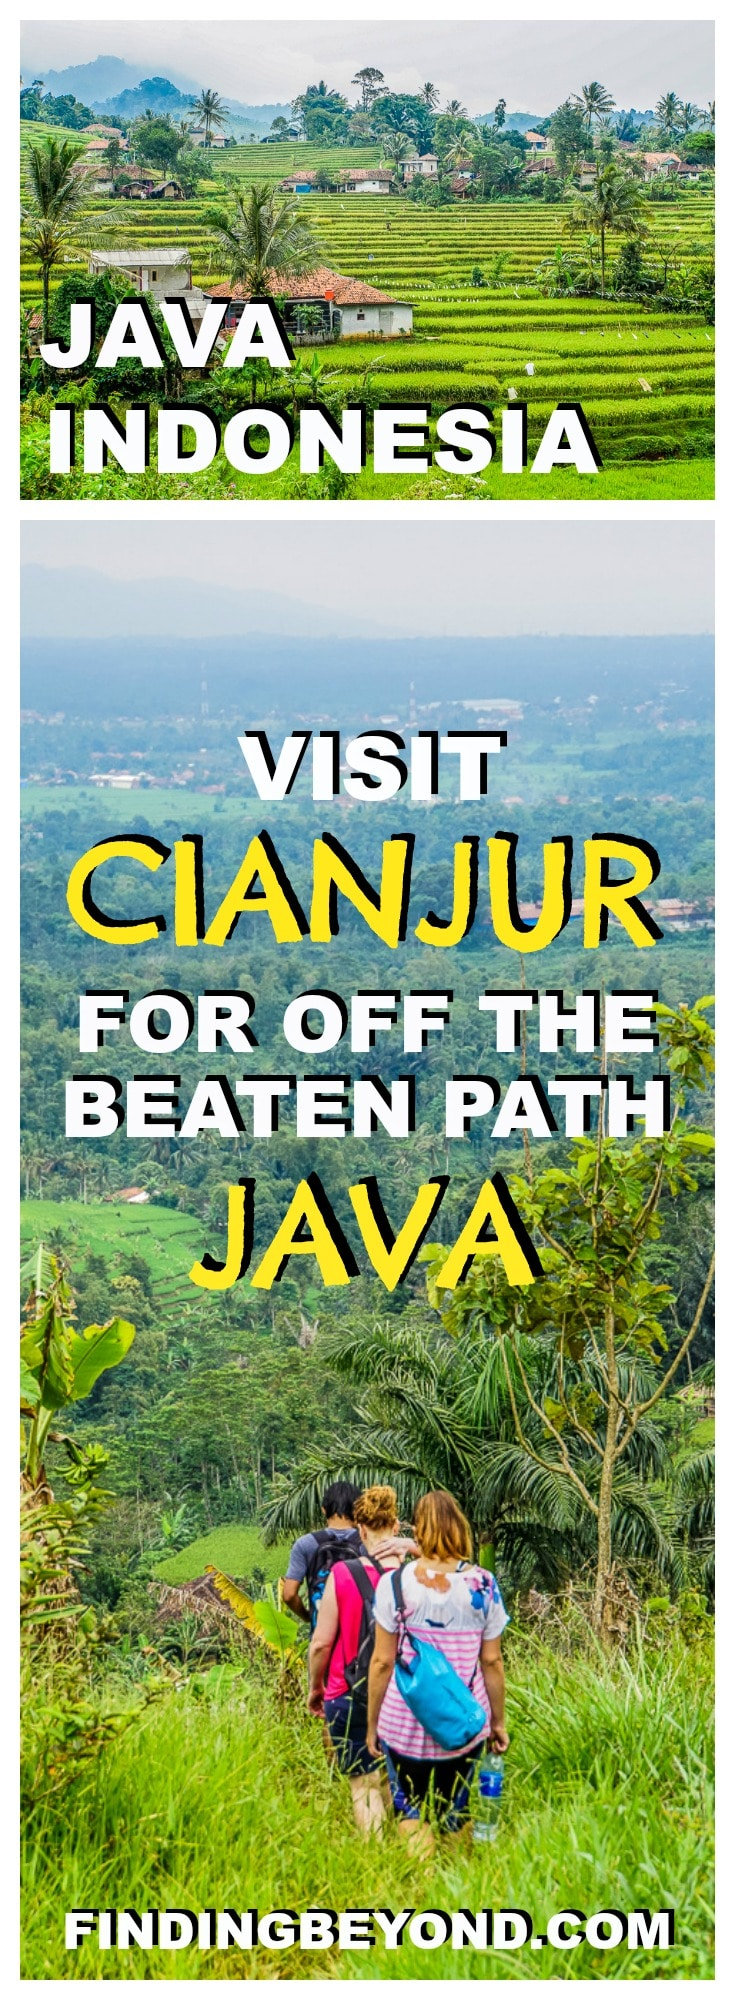 For rice fields, tea plantations, rural villages and national parks, visit Cianjur in West Java Indonesia for a non-touristy off the beaten path experience.